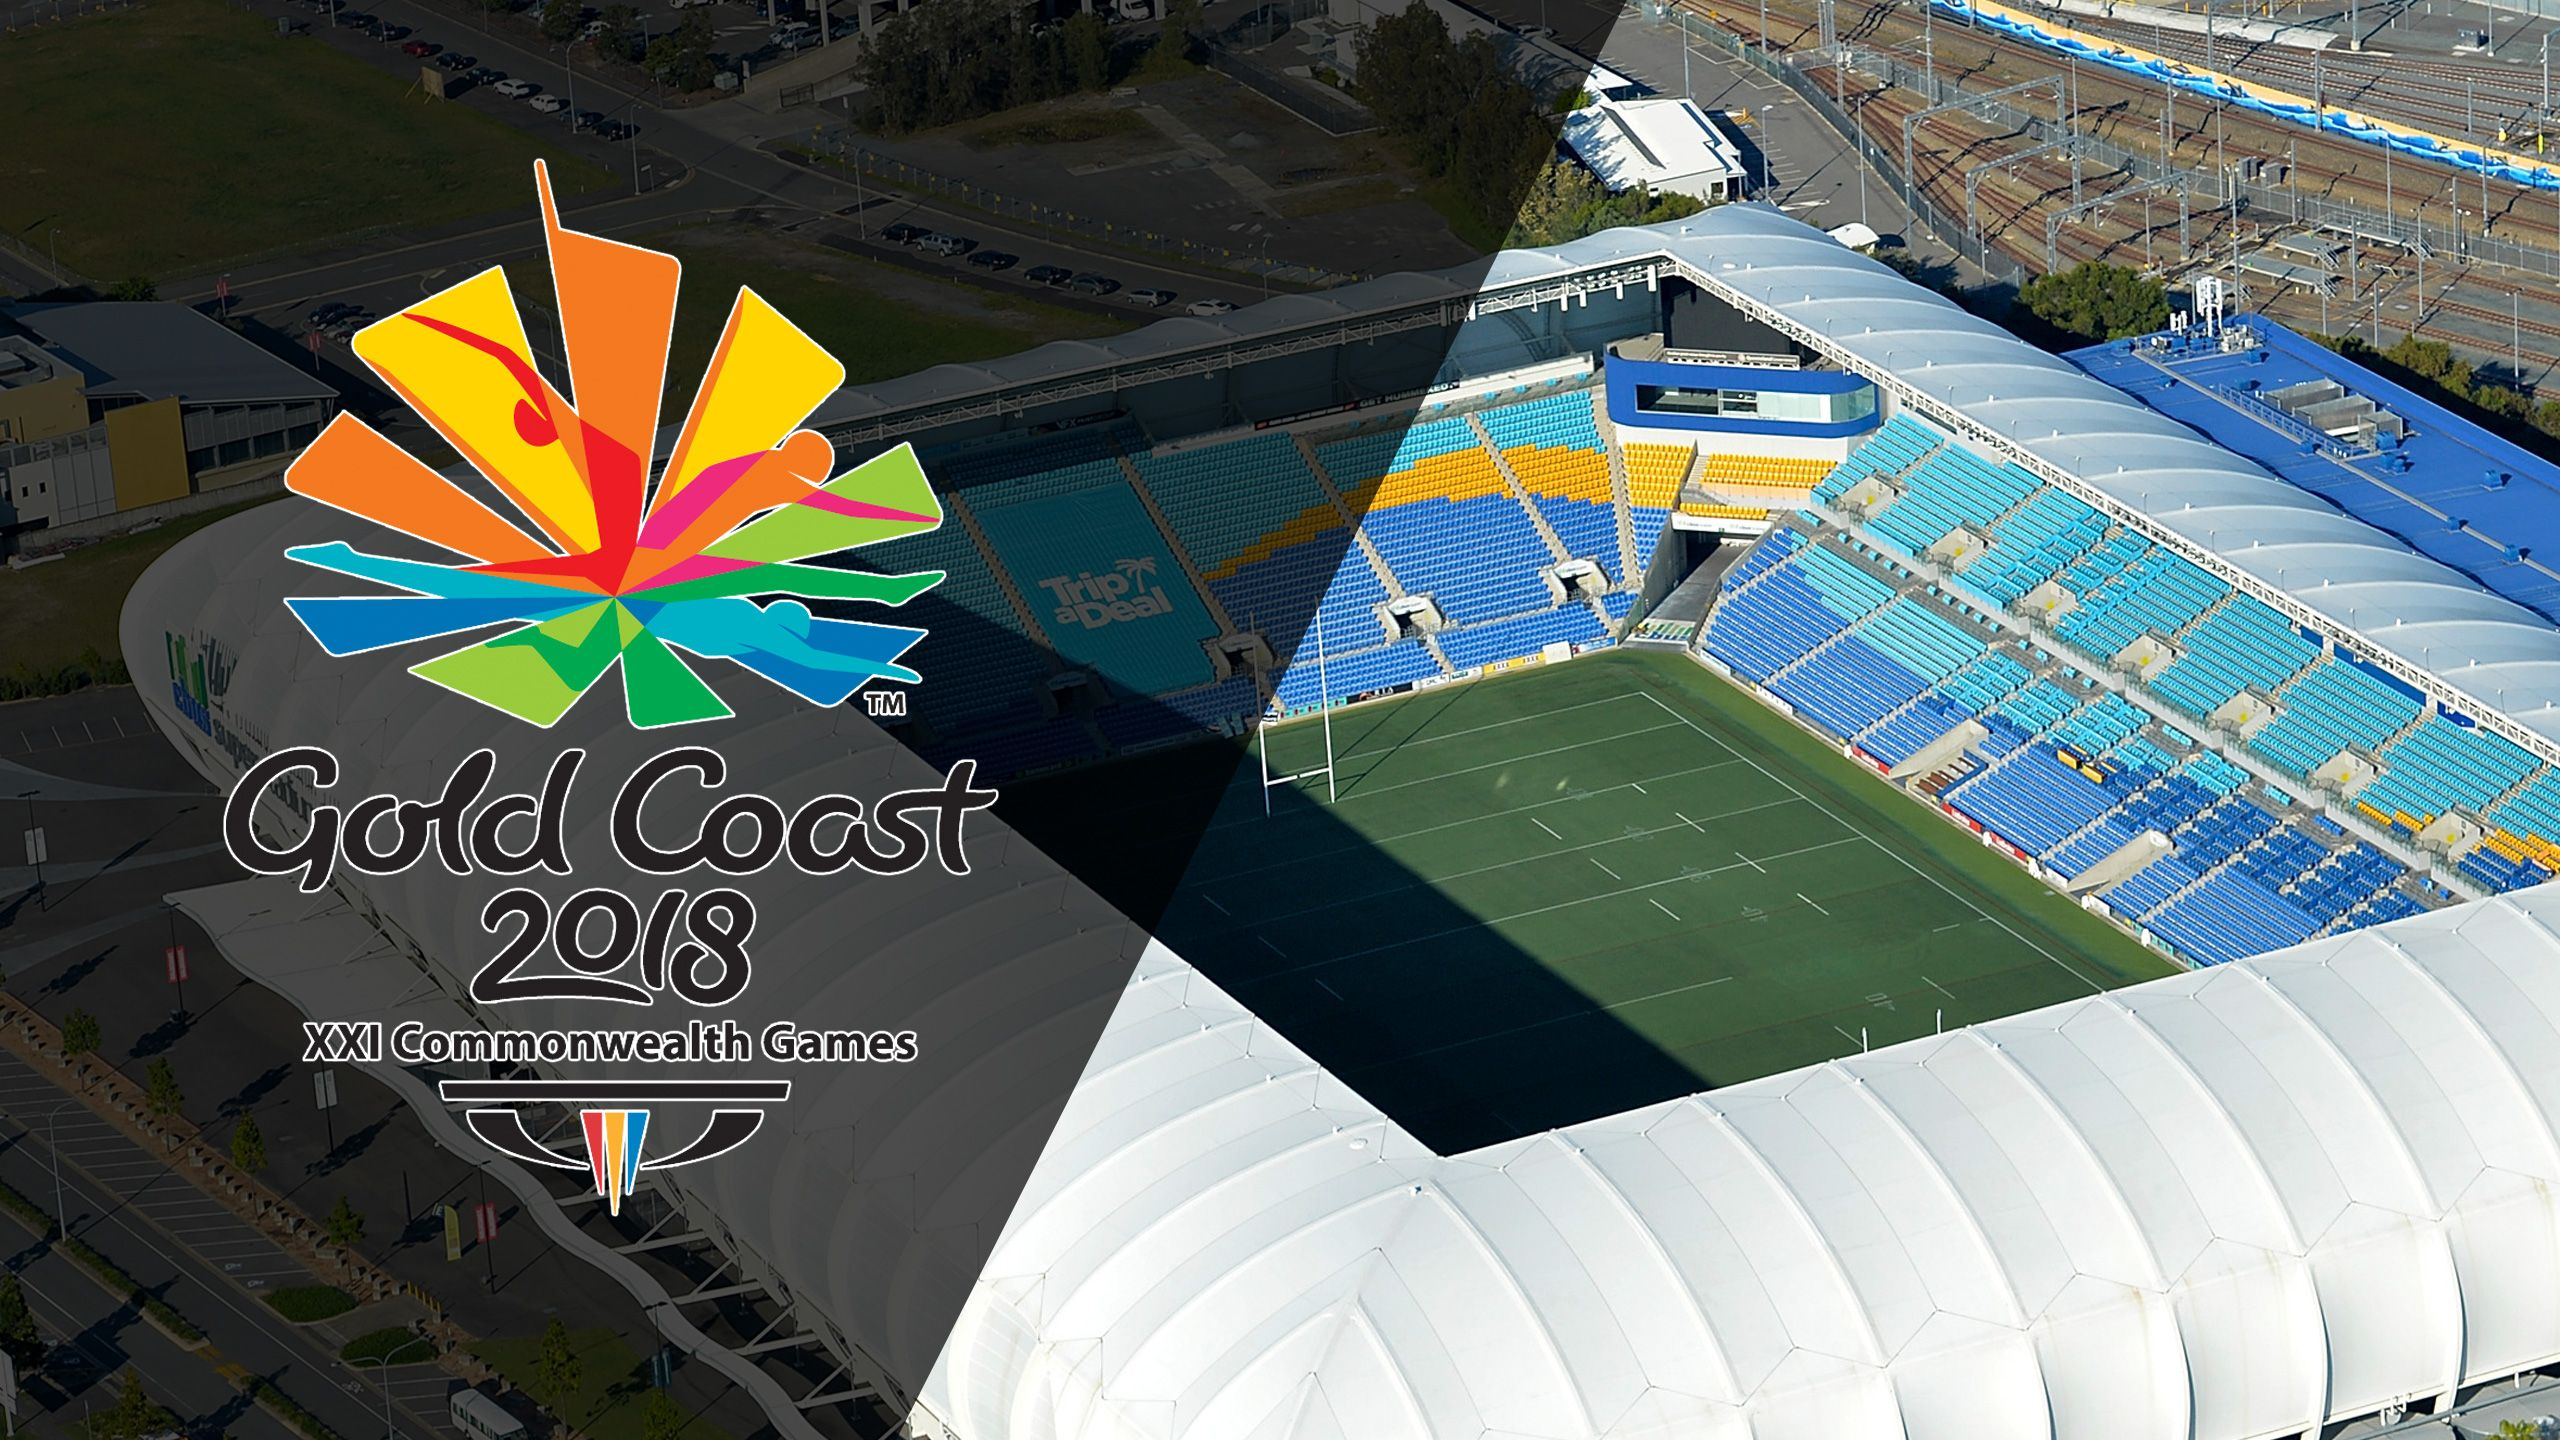 Rugby Sevens (Commonwealth Games)